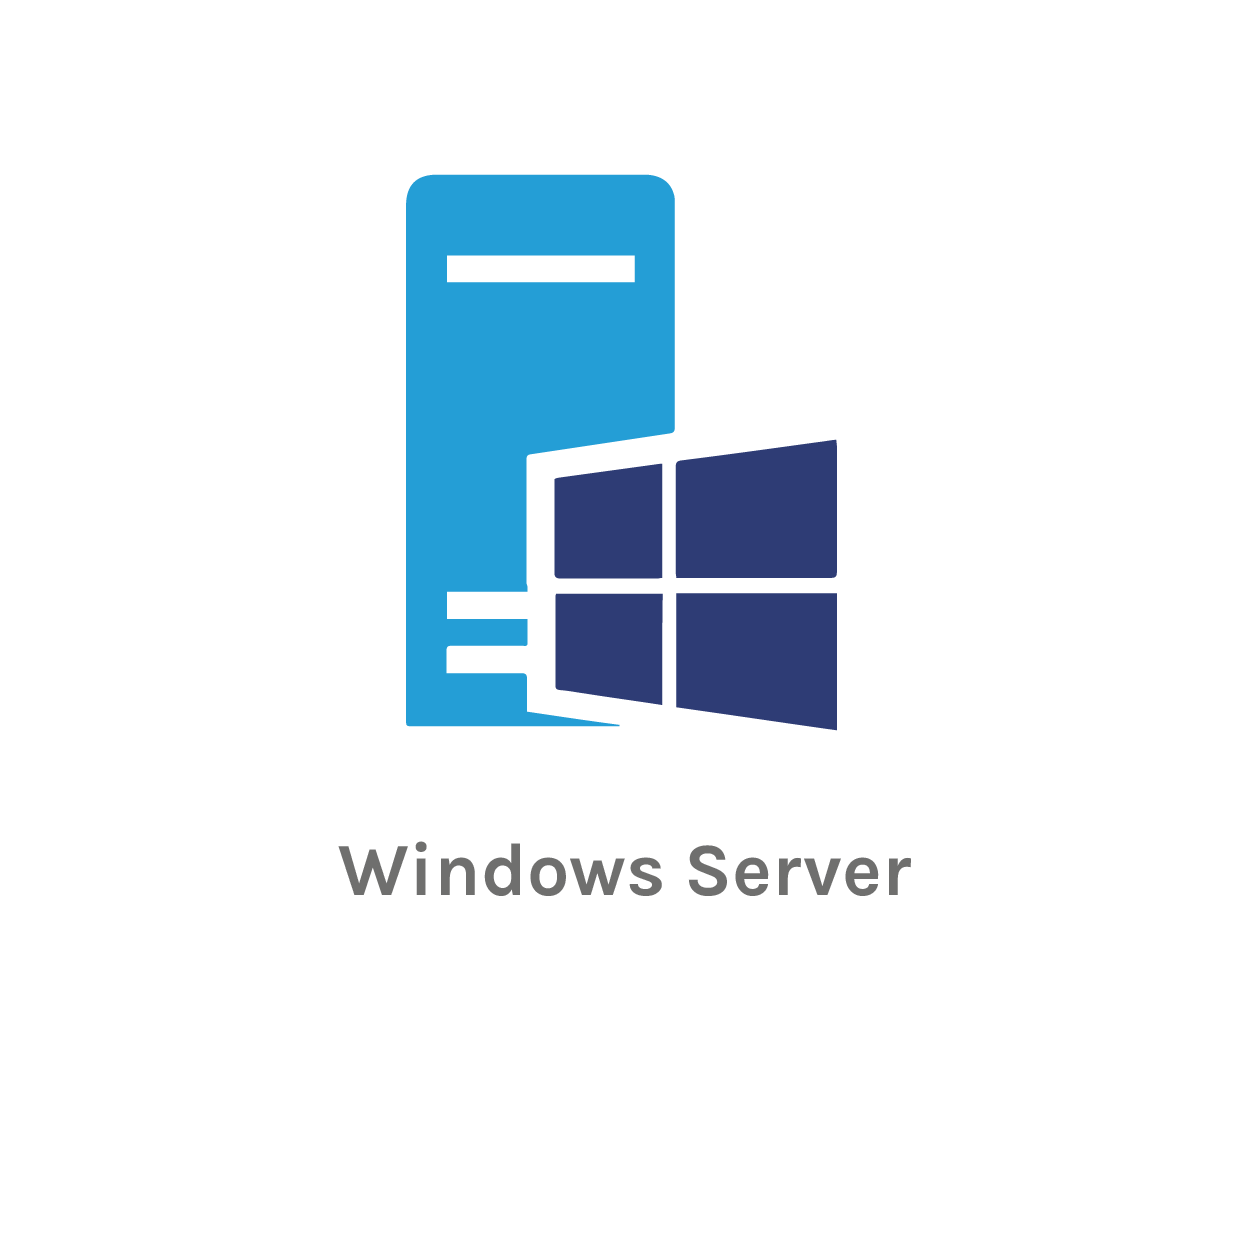 windows_server-01.png